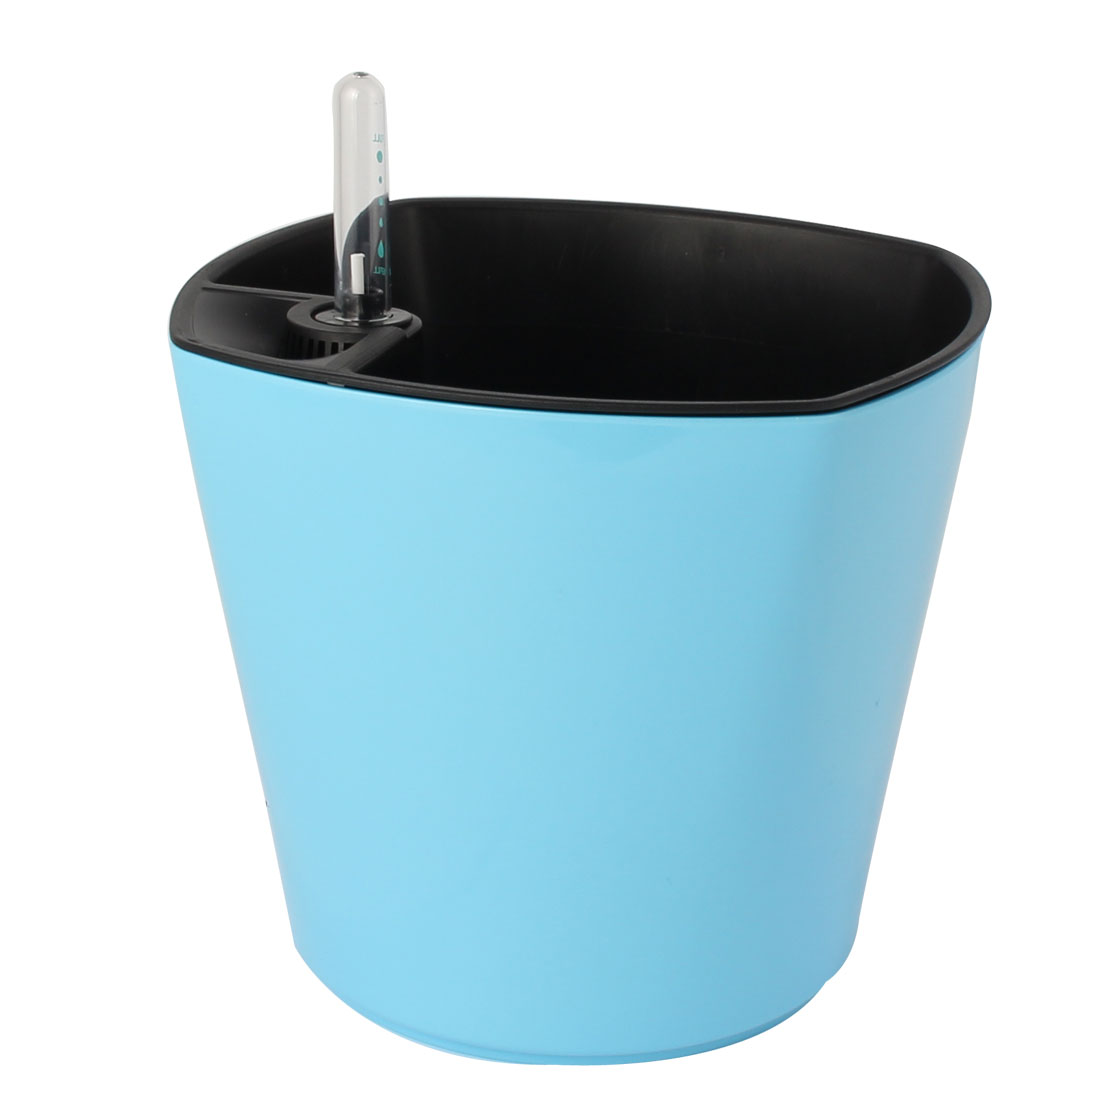 Plant Plastic Self Watering Planter Flowerpot Light Blue w Water Level Indicator